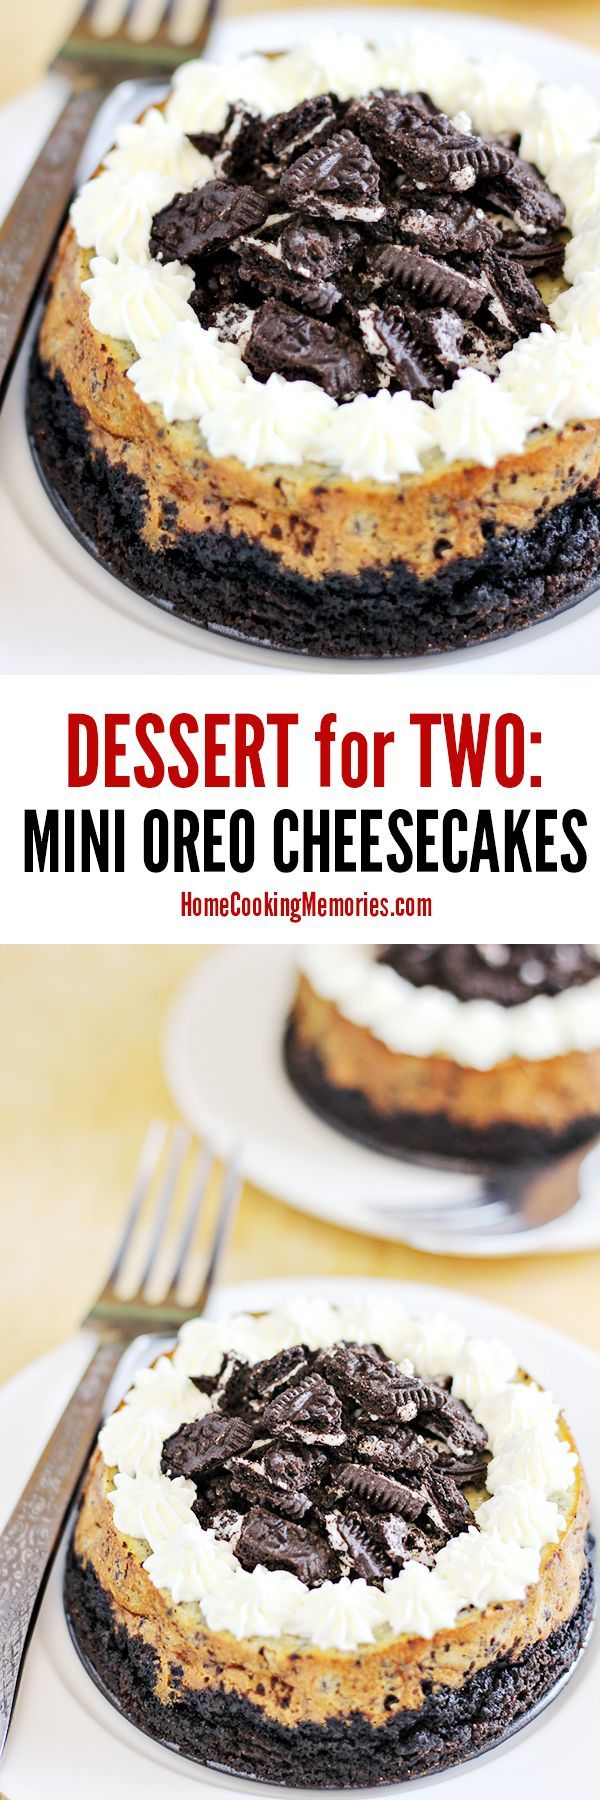 "This dessert for two is a must for Oreo fans! This Mini Oreo Cheesecake recipe makes two small 4"" cheesecakes made with plenty of crushed Oreo cookies baked into the cheesecake and in the Oreo crust."